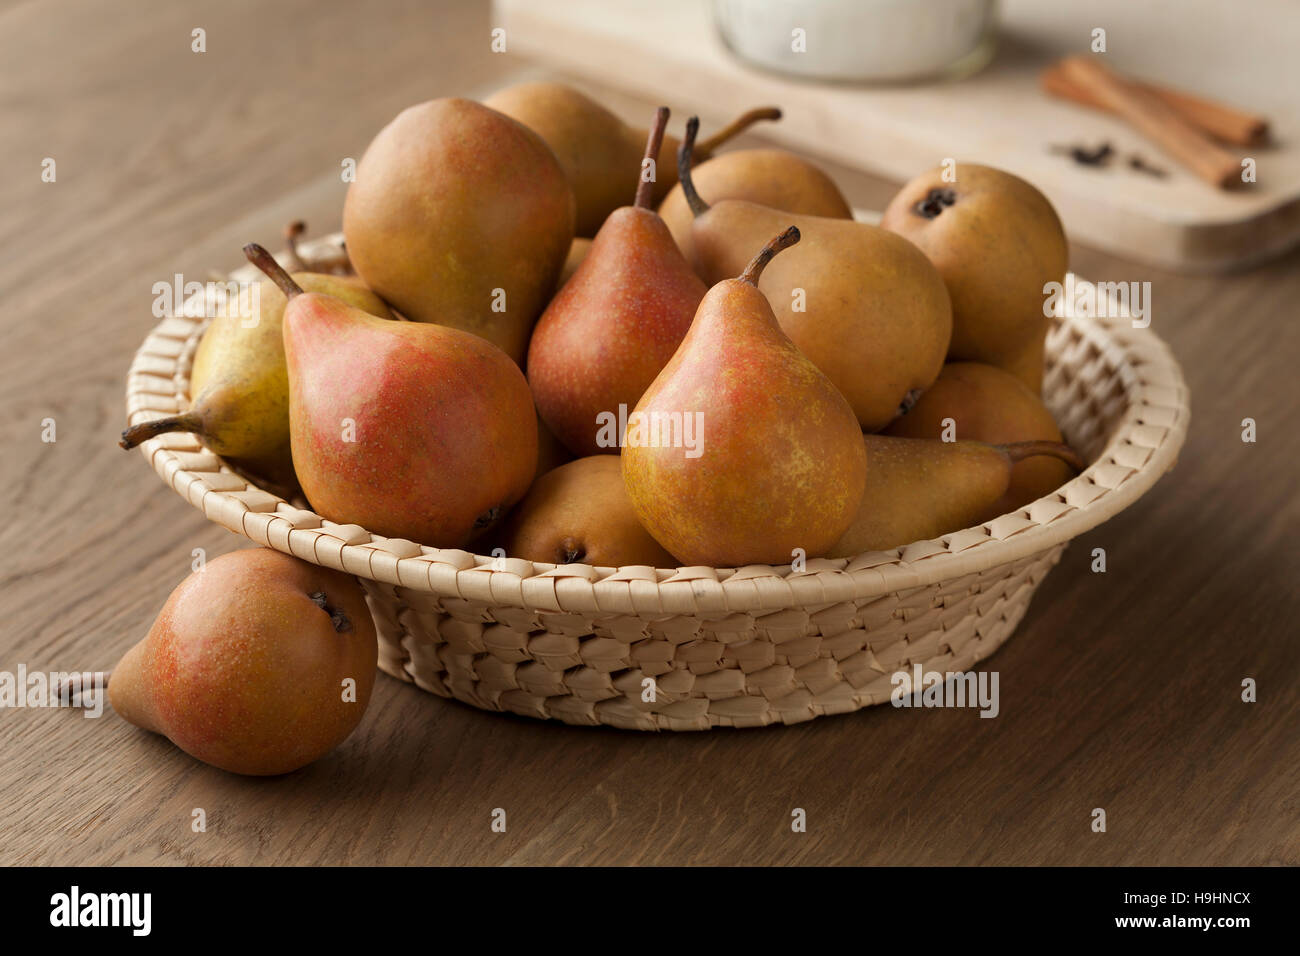 Fresh picked Gieser Wildeman pears in a basket - Stock Image